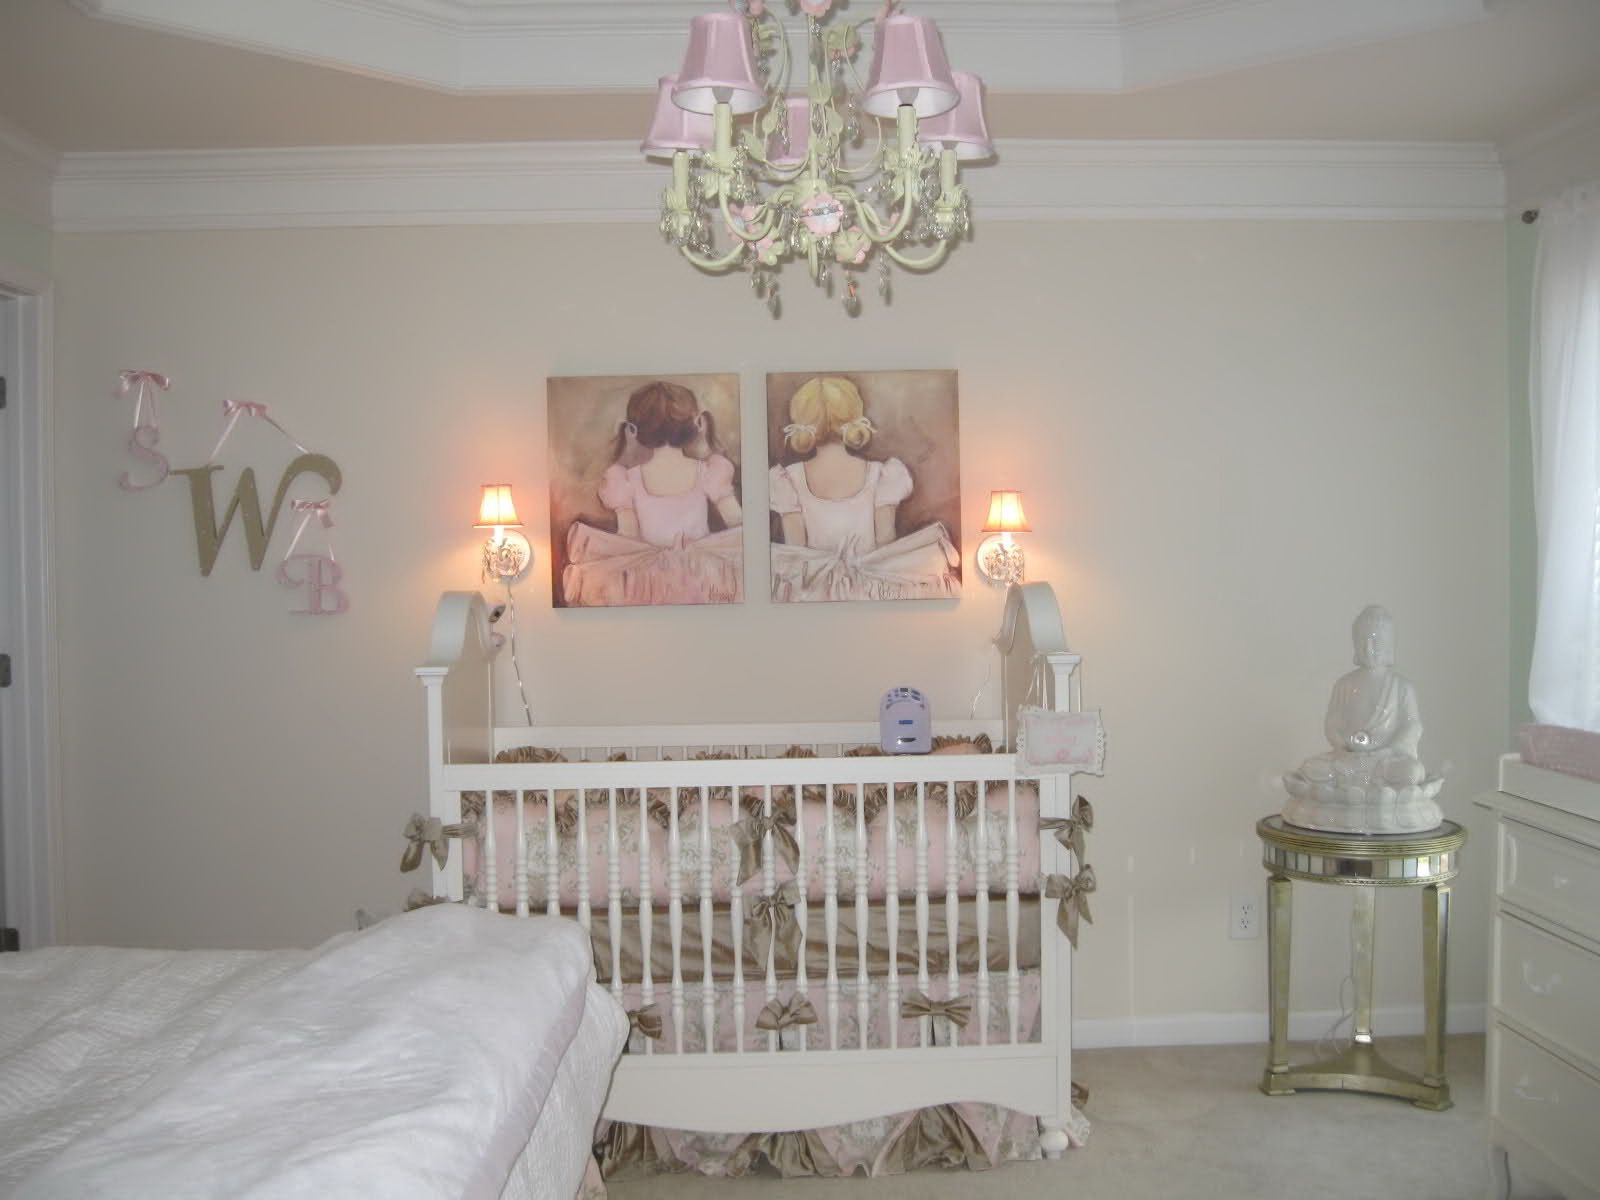 Exceptionnel Beautiful And Safe Baby Room Decoration With Tufted Crib Decorated With  Ballerina Girls Painting And A